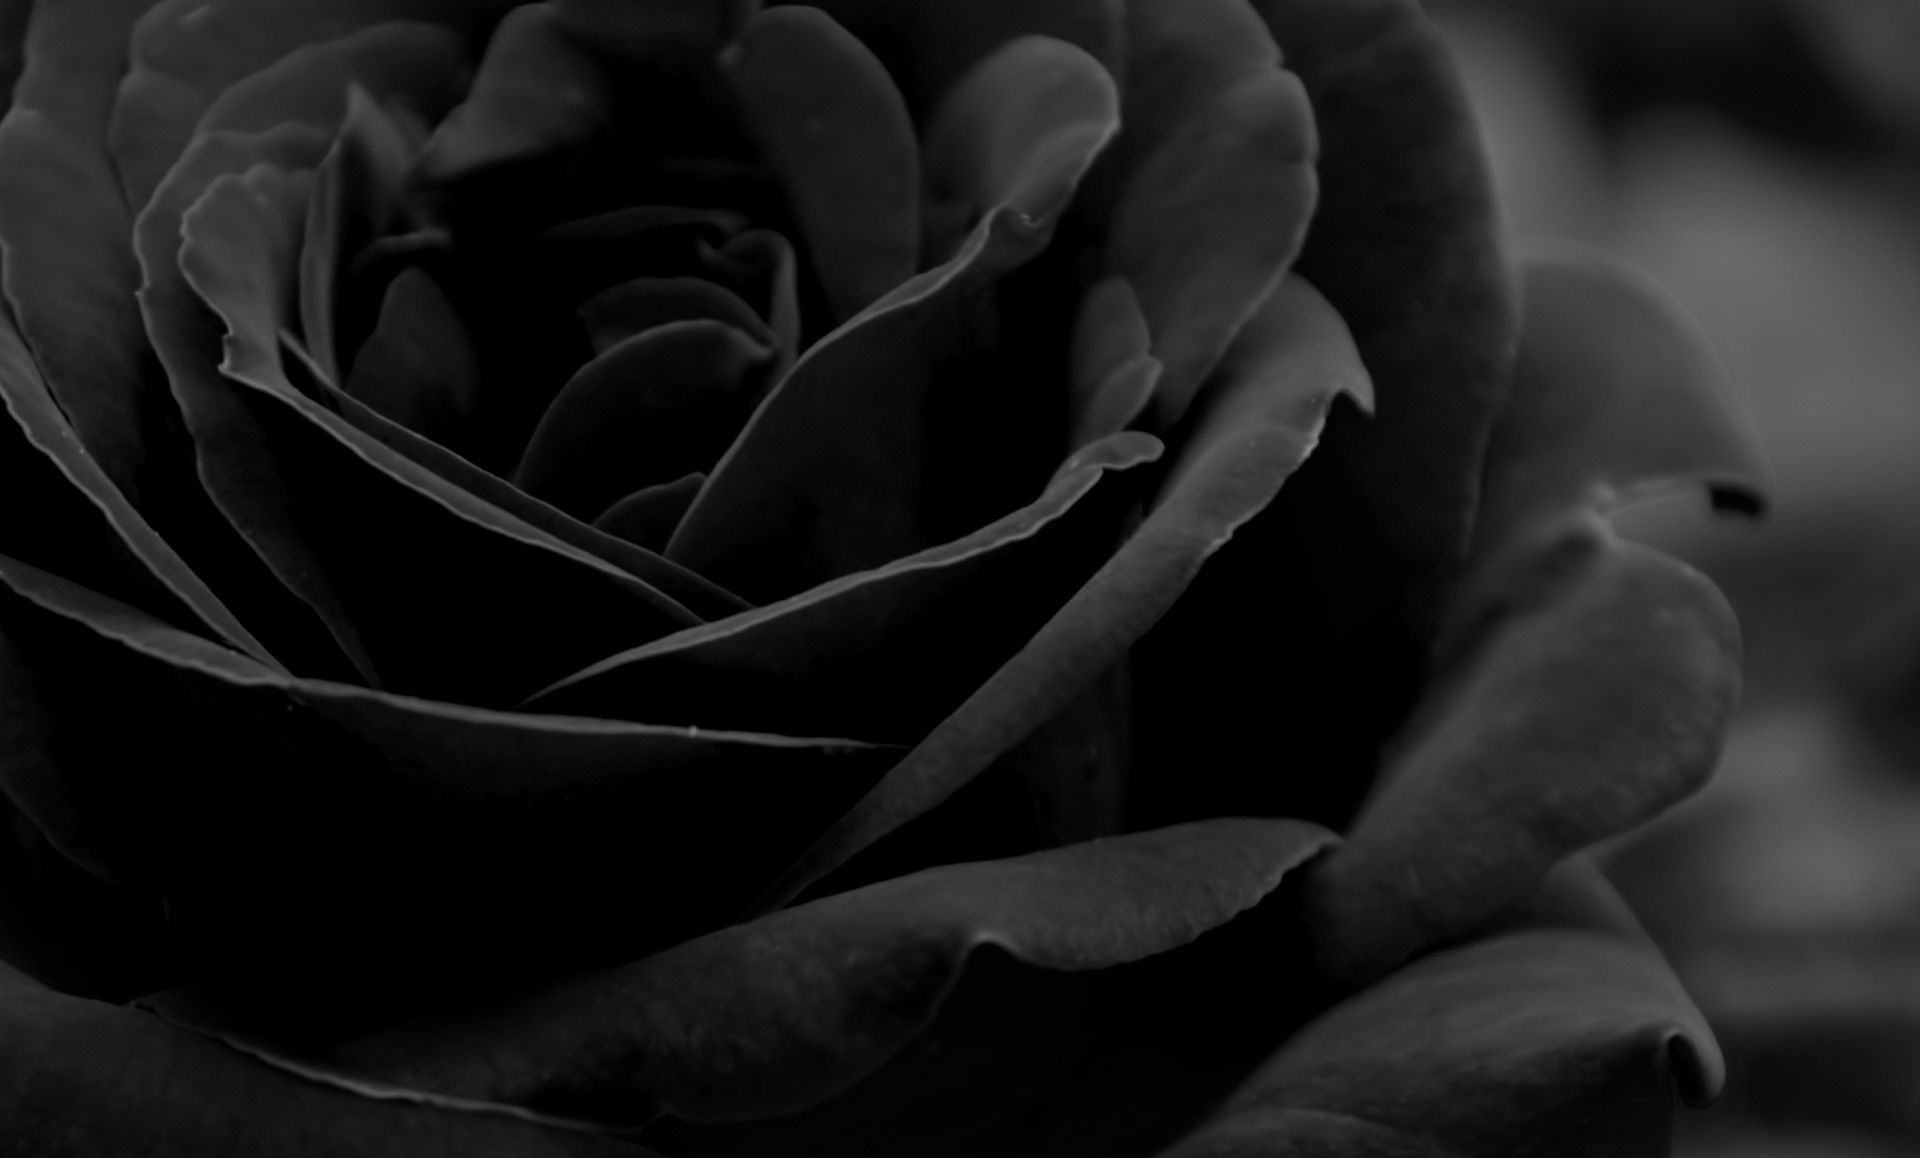 Black Rose Wallpaper